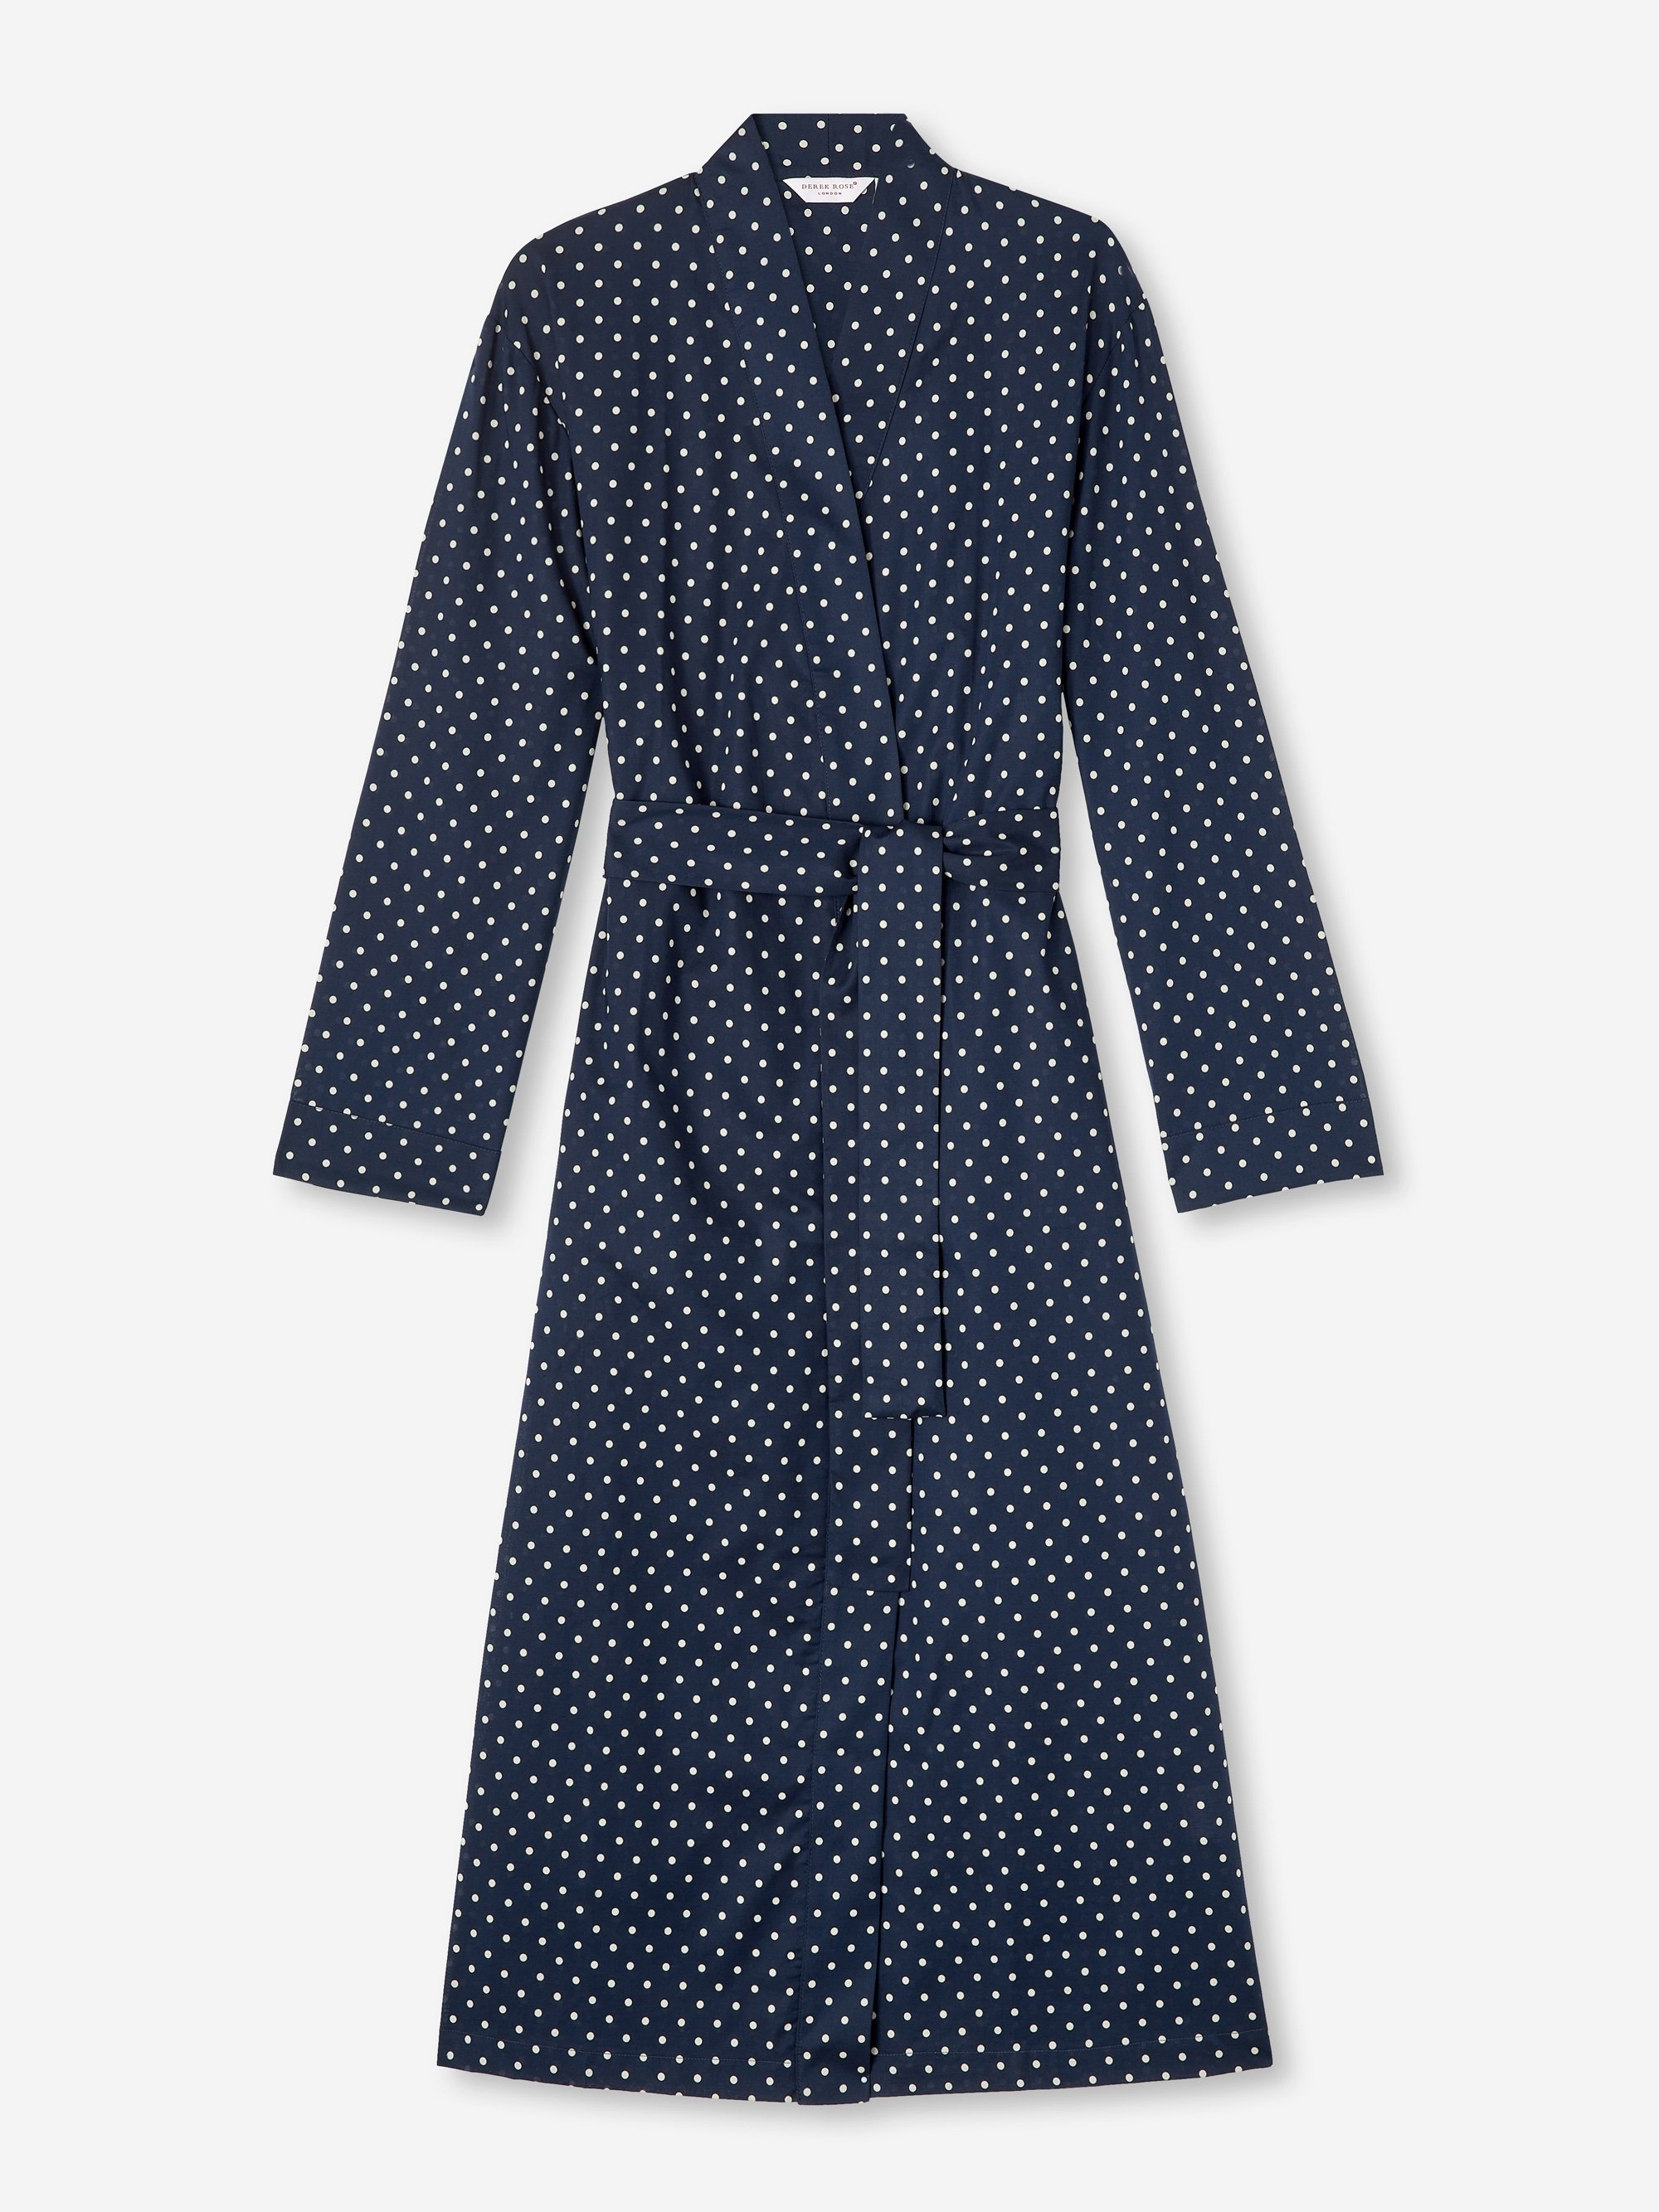 Women's Mid Length Dressing Gown Plaza 60 Cotton Batiste Navy